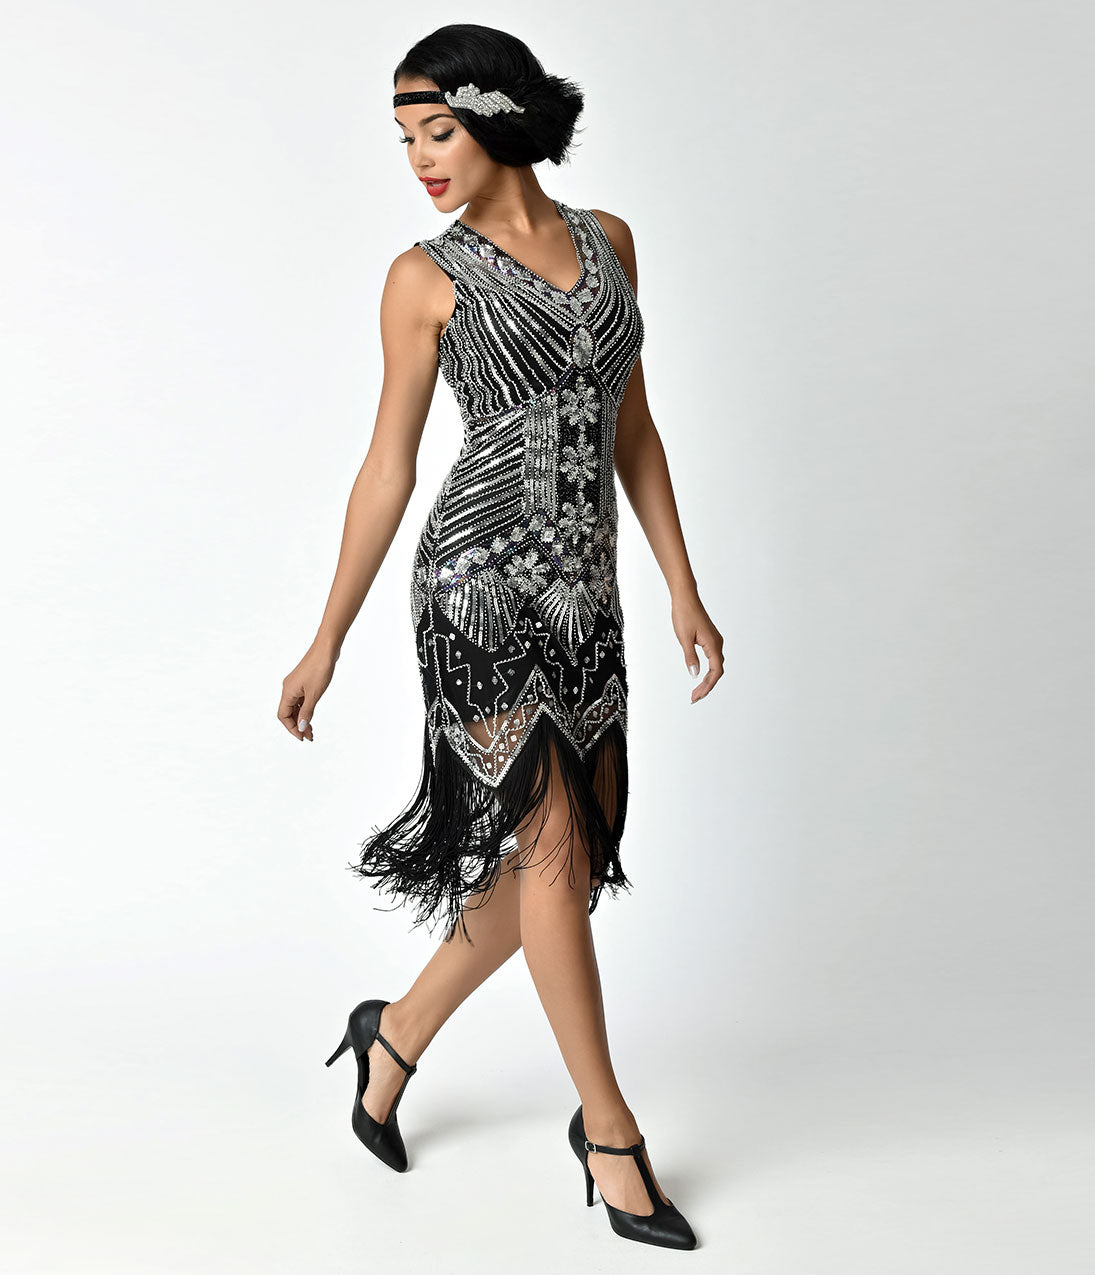 Vintage Evening Dresses and Formal Evening Gowns Unique Vintage 1920S Deco Silver  Black Veronique Fringe Flapper Dress $98.00 AT vintagedancer.com